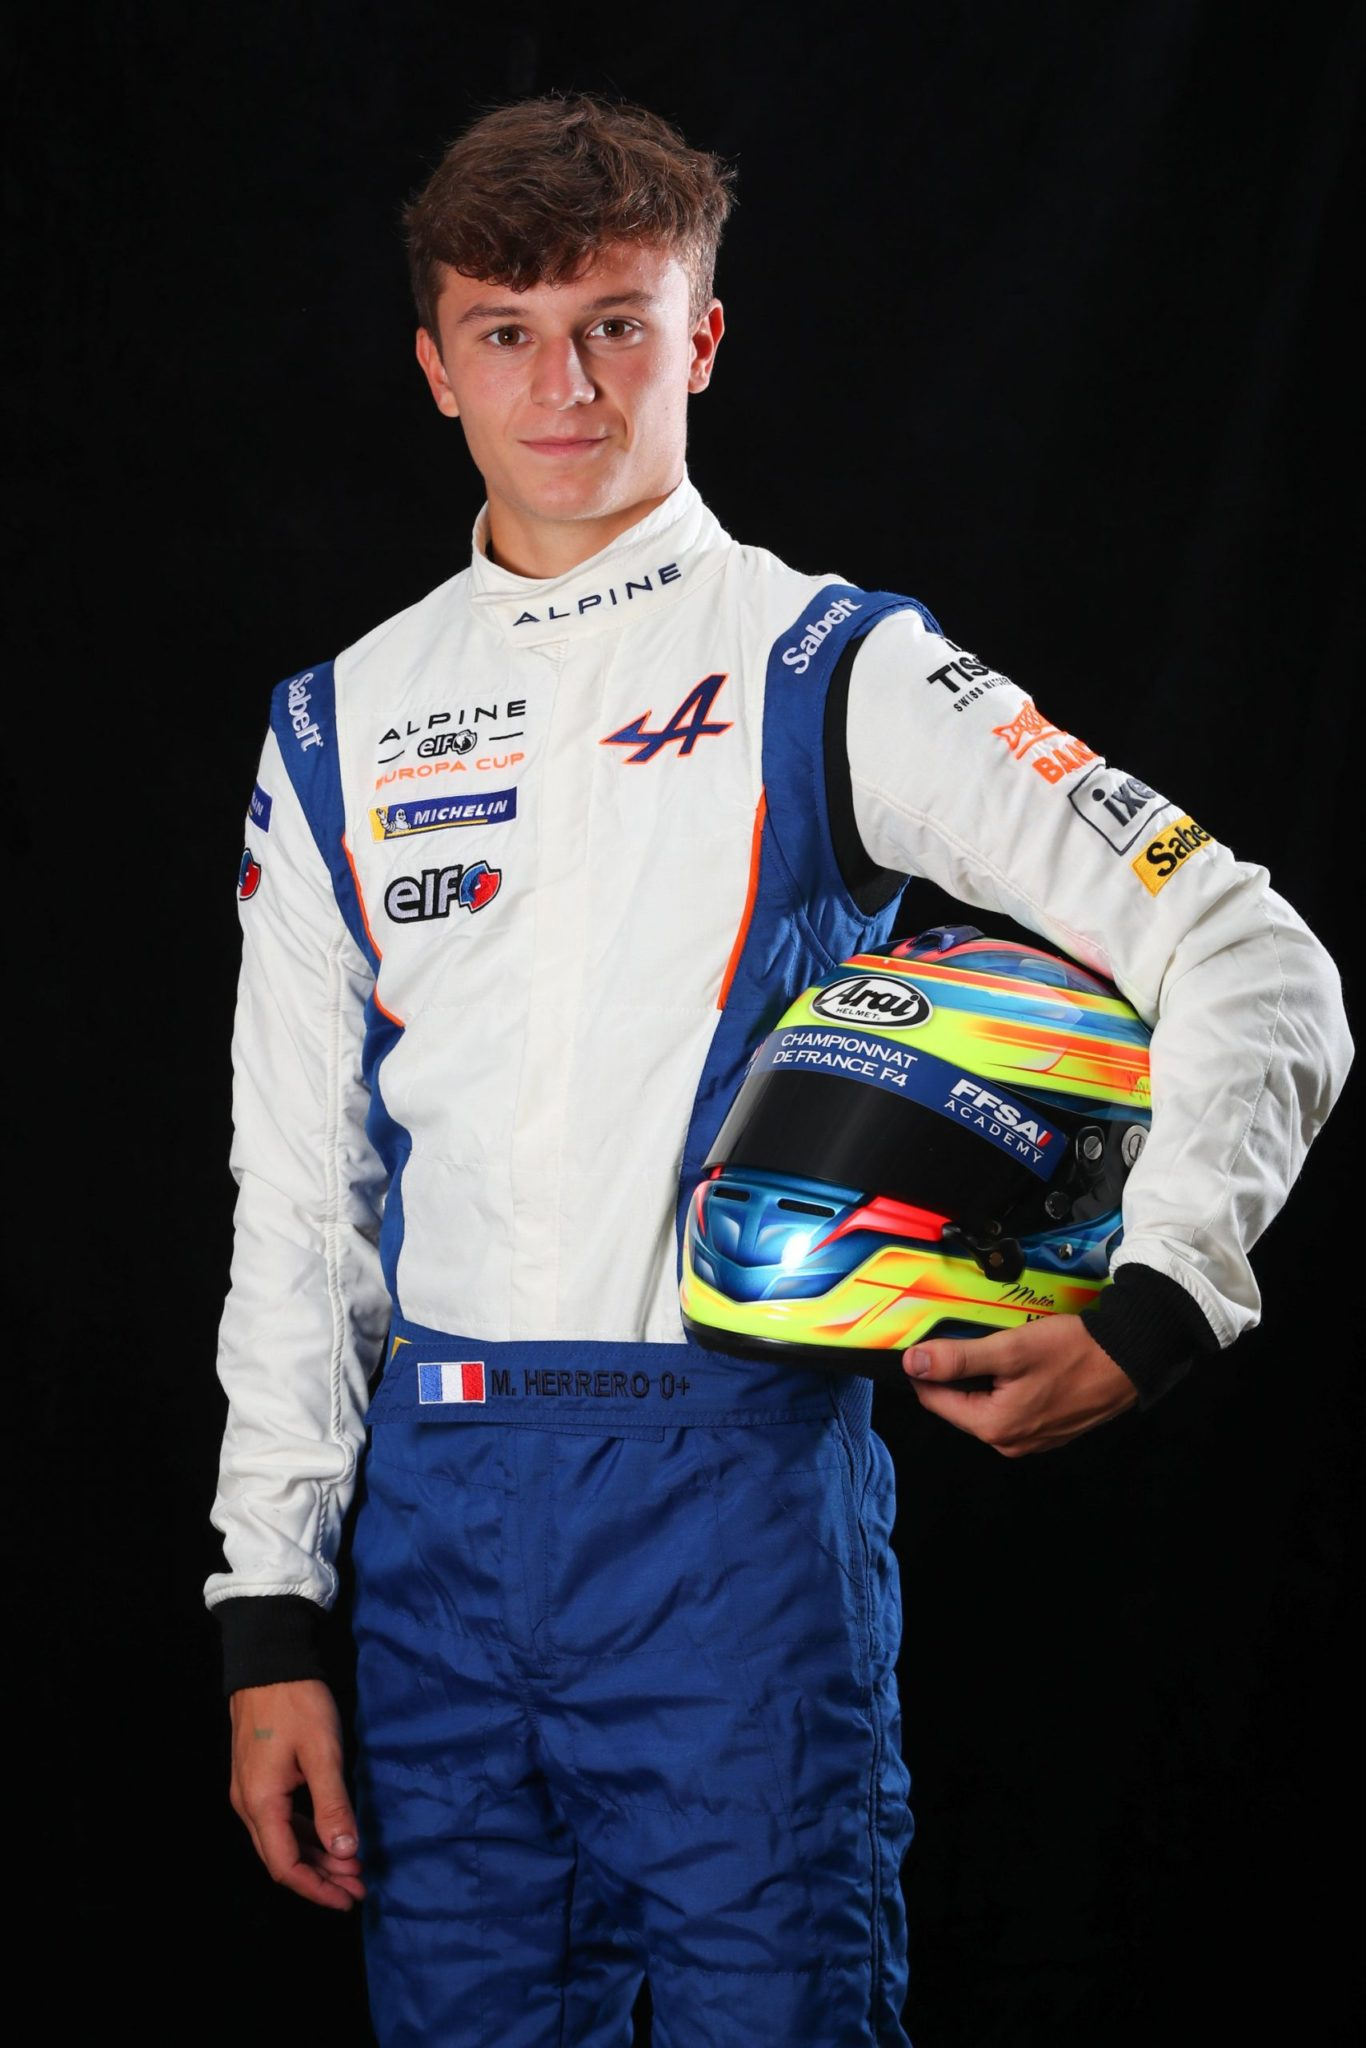 Herrero Mateo (fra), Herrero by Milan Competition, Alpine A110 Cup, Junior, ambiance, portrait during the Coupes de Paques 2020, 1st round of the Alpine Elf Europa Cup, from August 21 to 23, 2020 on the Circuit Paul Armagnac, in Nogaro, France - Photo Gregory Lenormand / DPPI